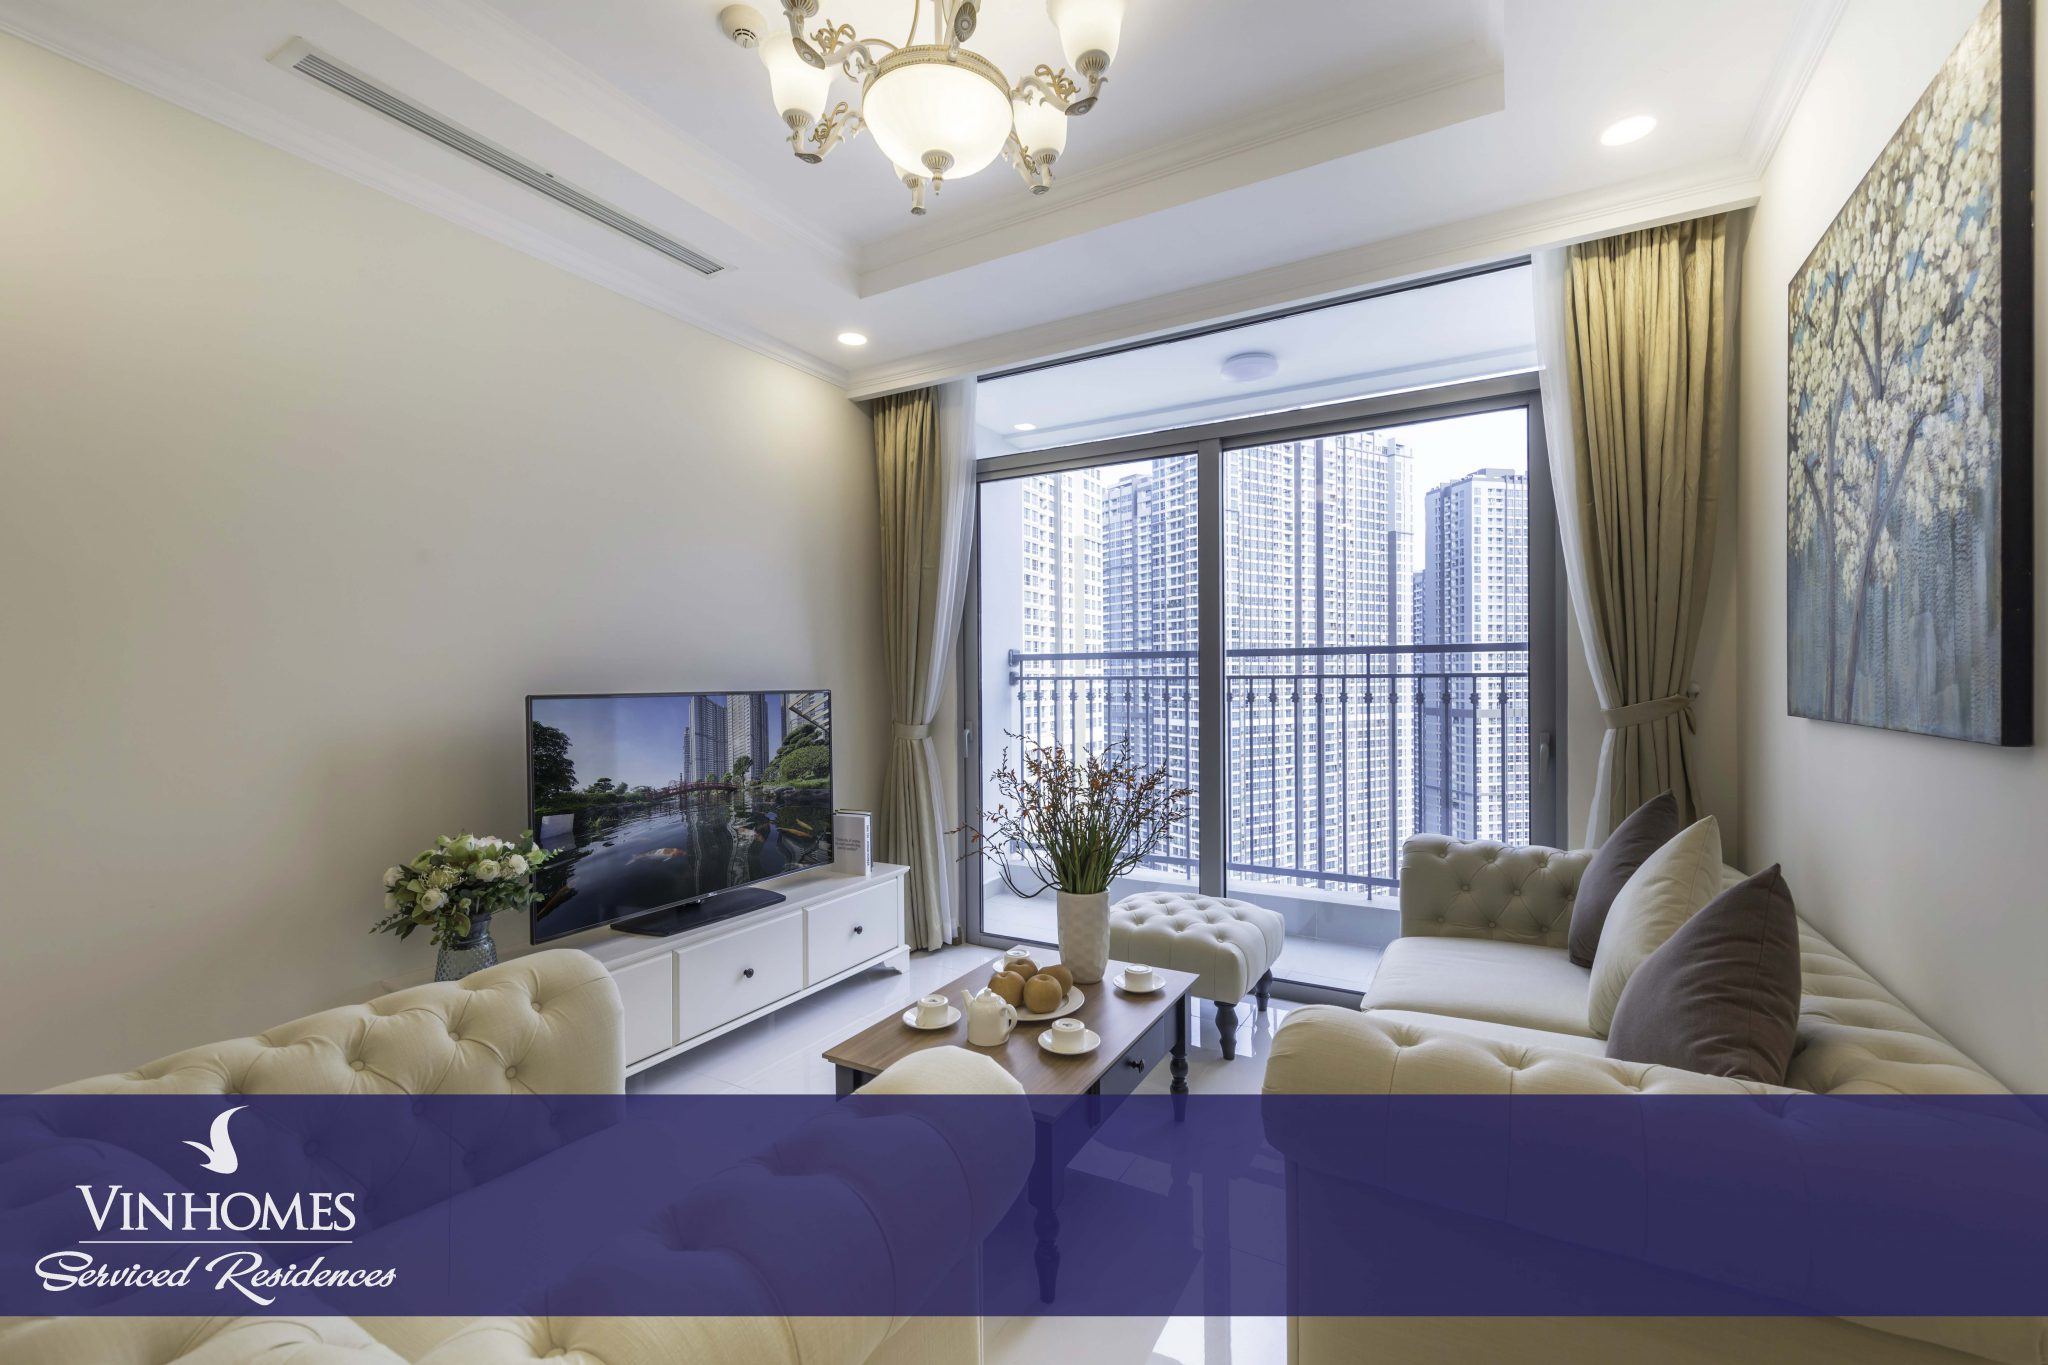 3-bedroom apartment - Vinhomes Serviced Residences